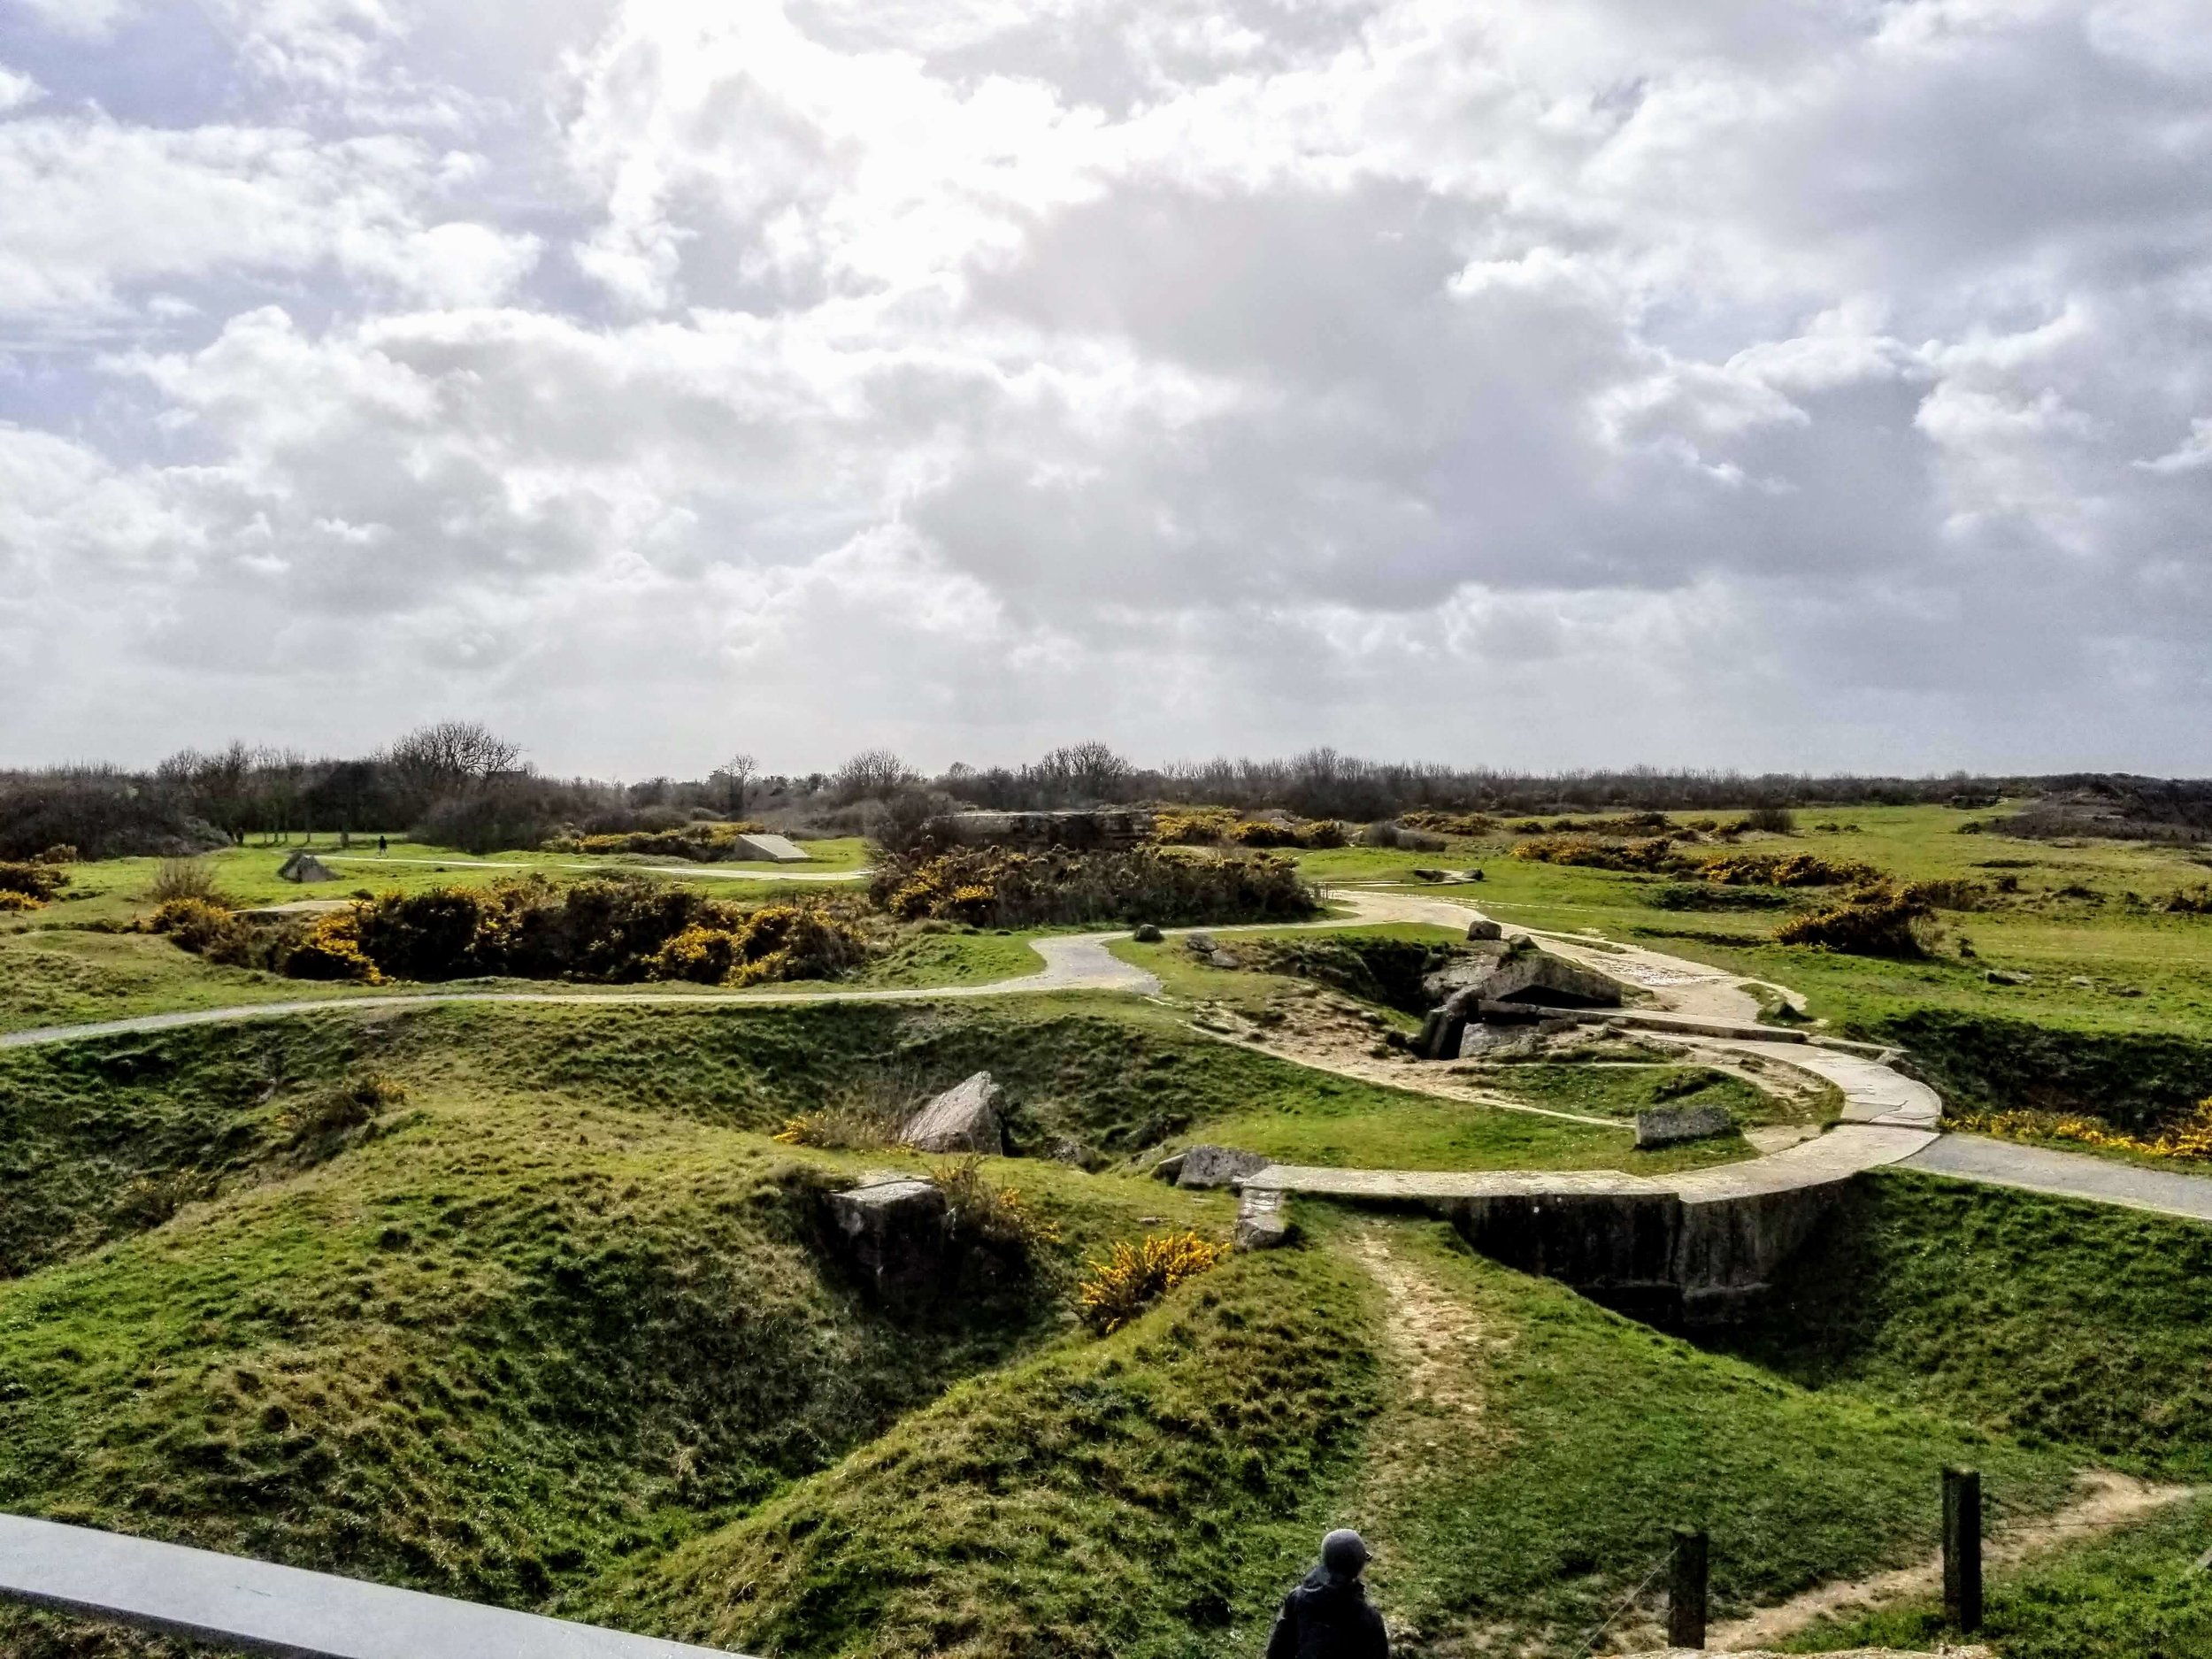 The multiple craters of Pointe du Hoc